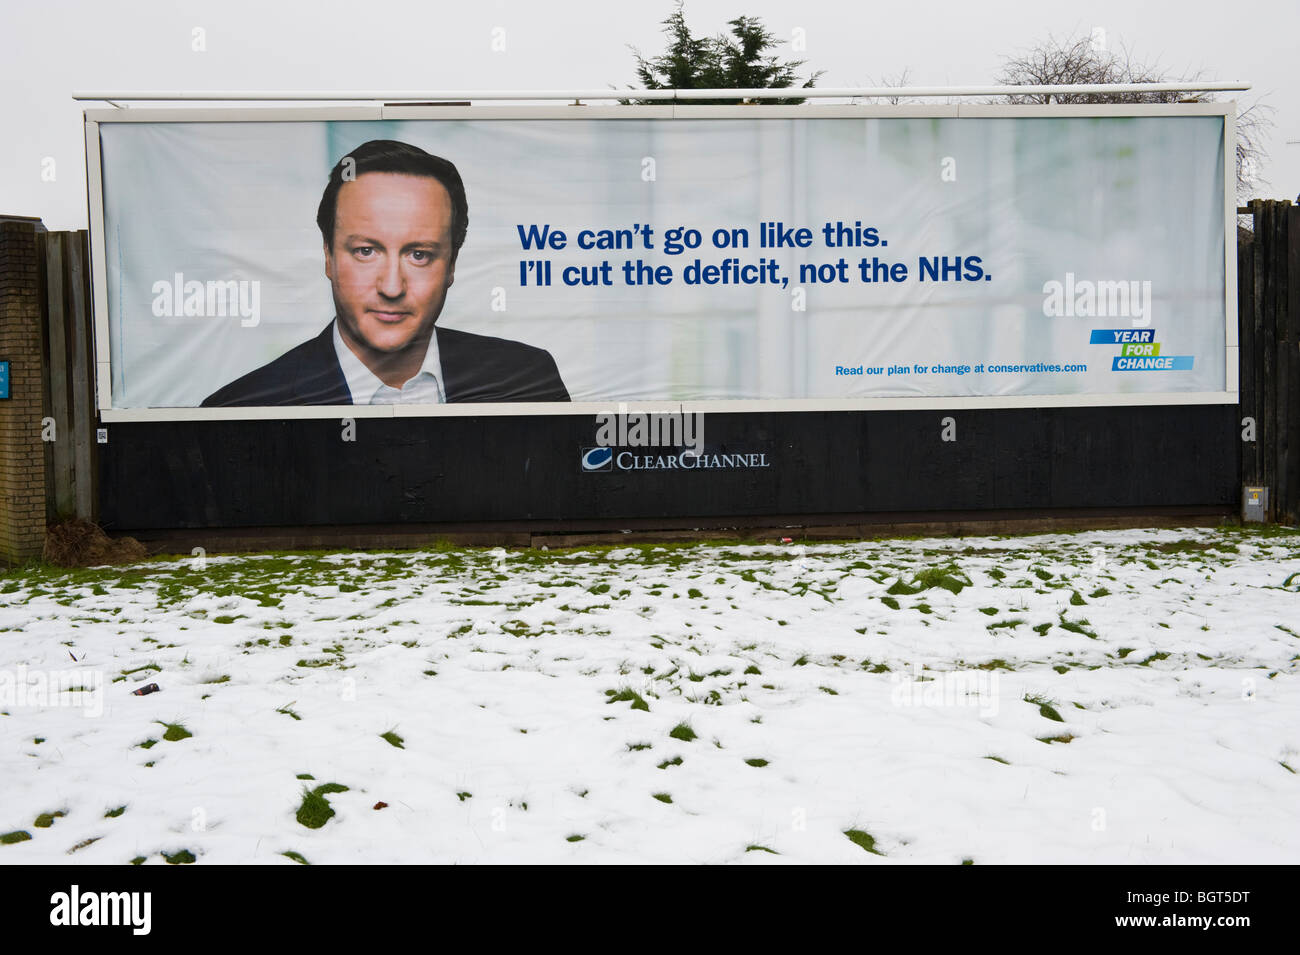 Conservative Party leader David Cameron featured on ClearChannel billboard site in Newport South Wales UK - Stock Image